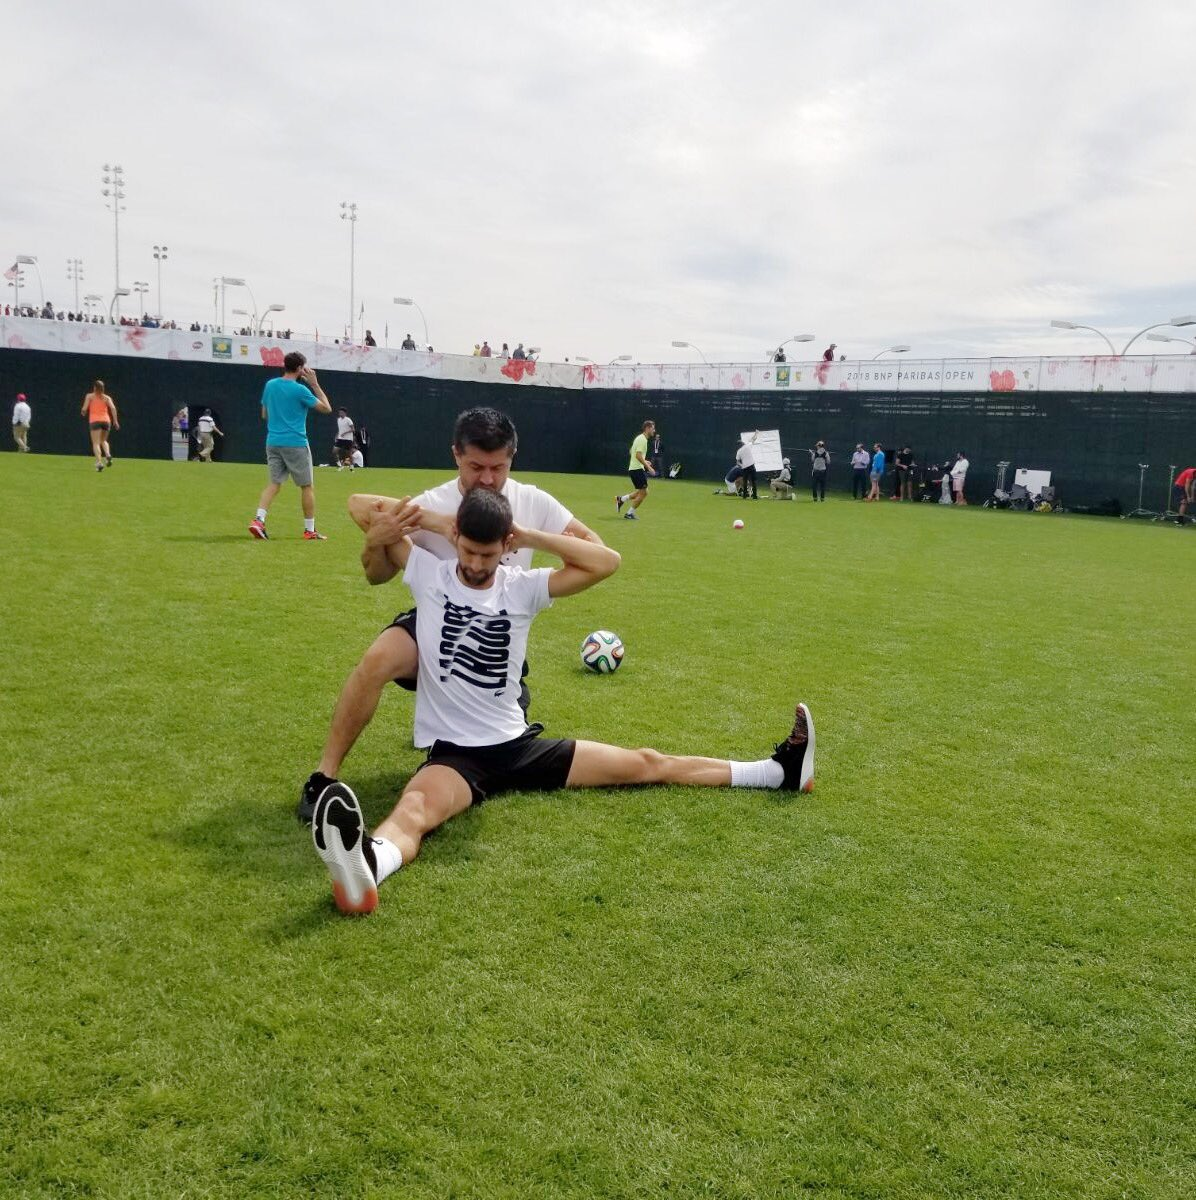 Your guy is BACK (and more flexible than ever). Tomorrow. Let's get it 👊🎾 #NoleFam #TennisParadise #FullBloom